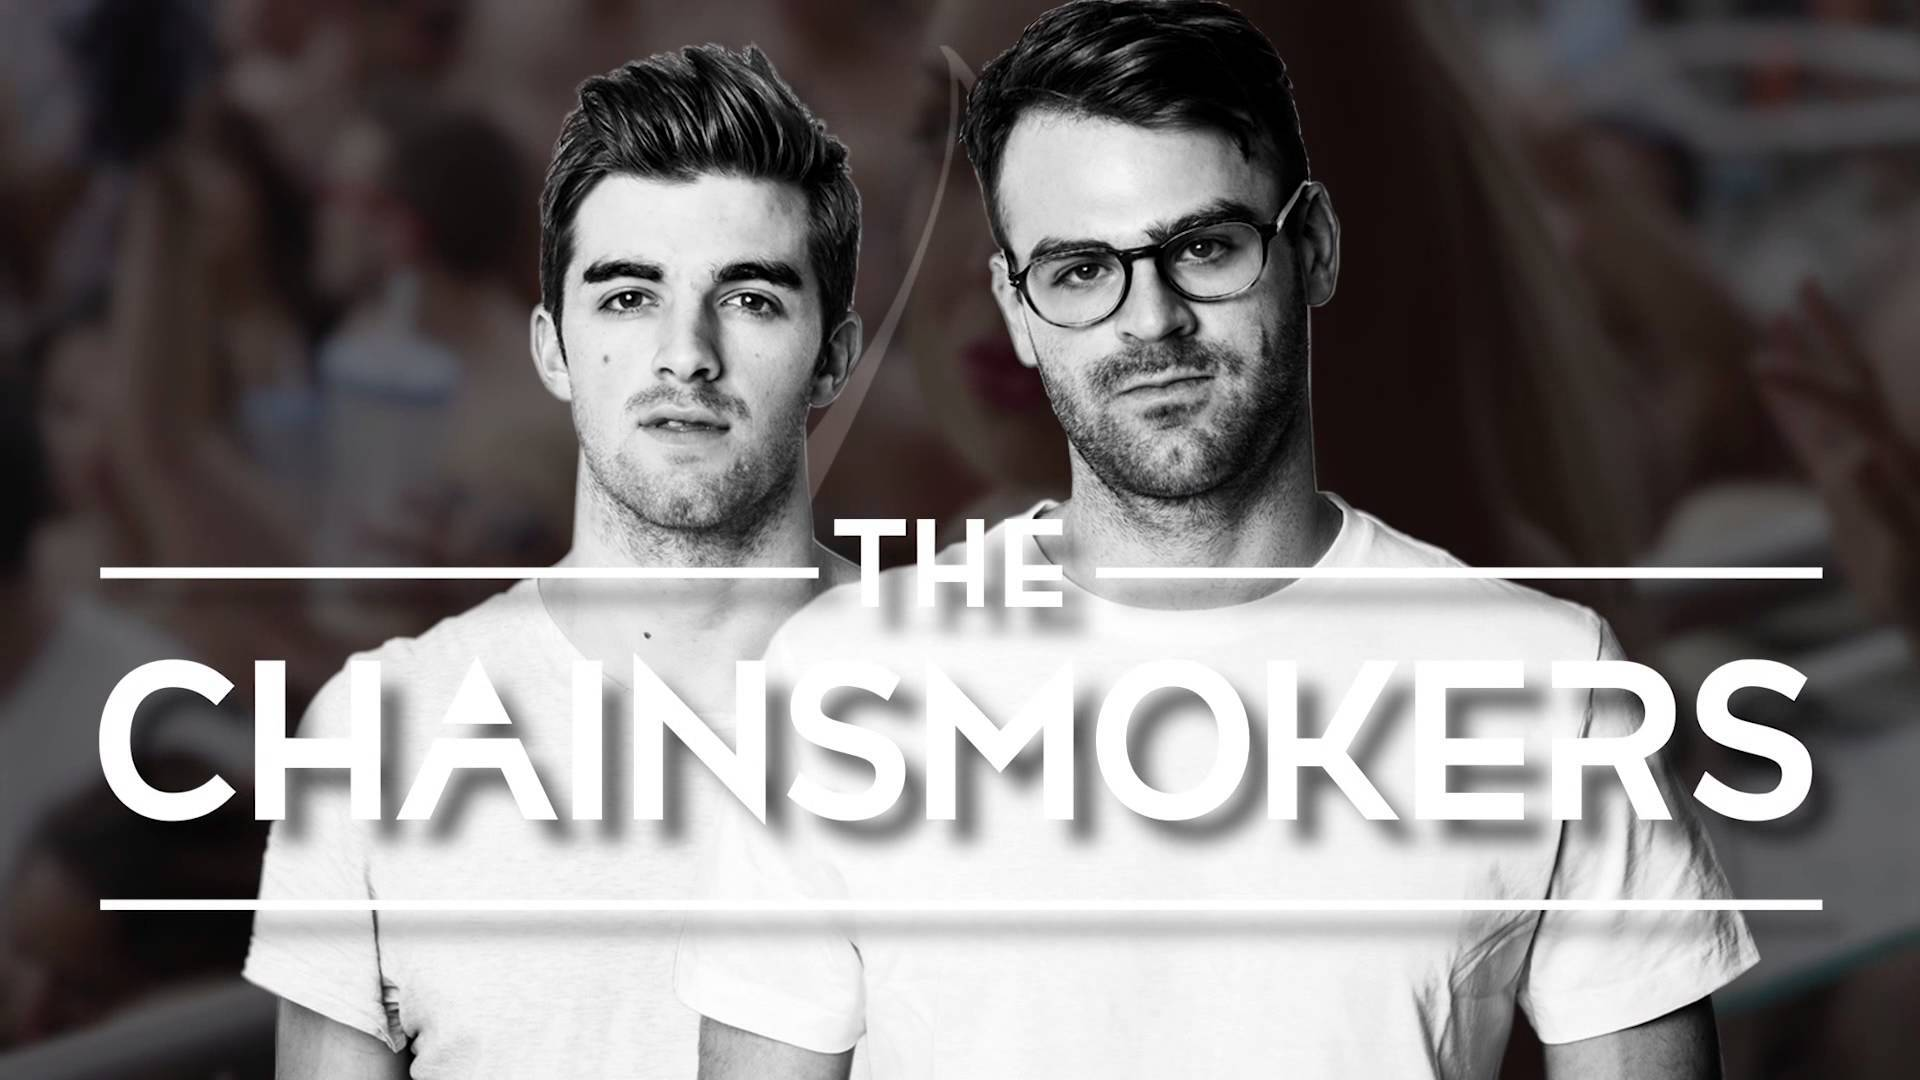 the chainsmokers wallpaper 62736